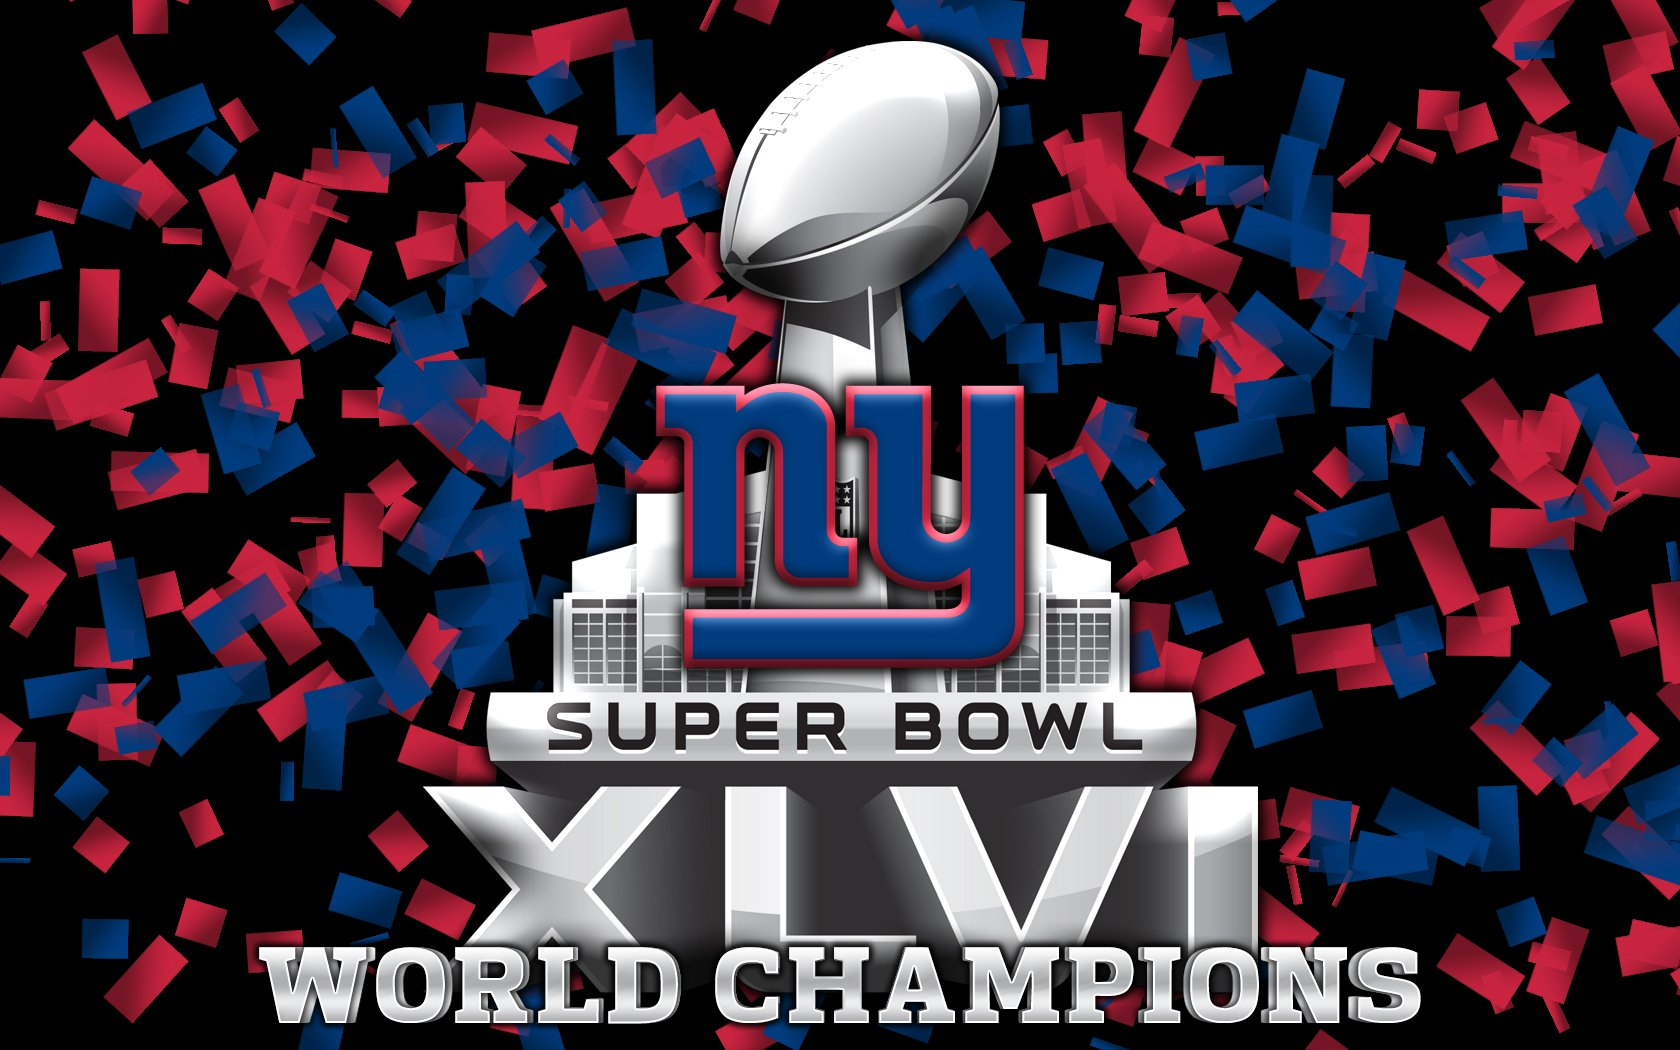 Free Download New York Giants Desktop Wallpaper New York Giants